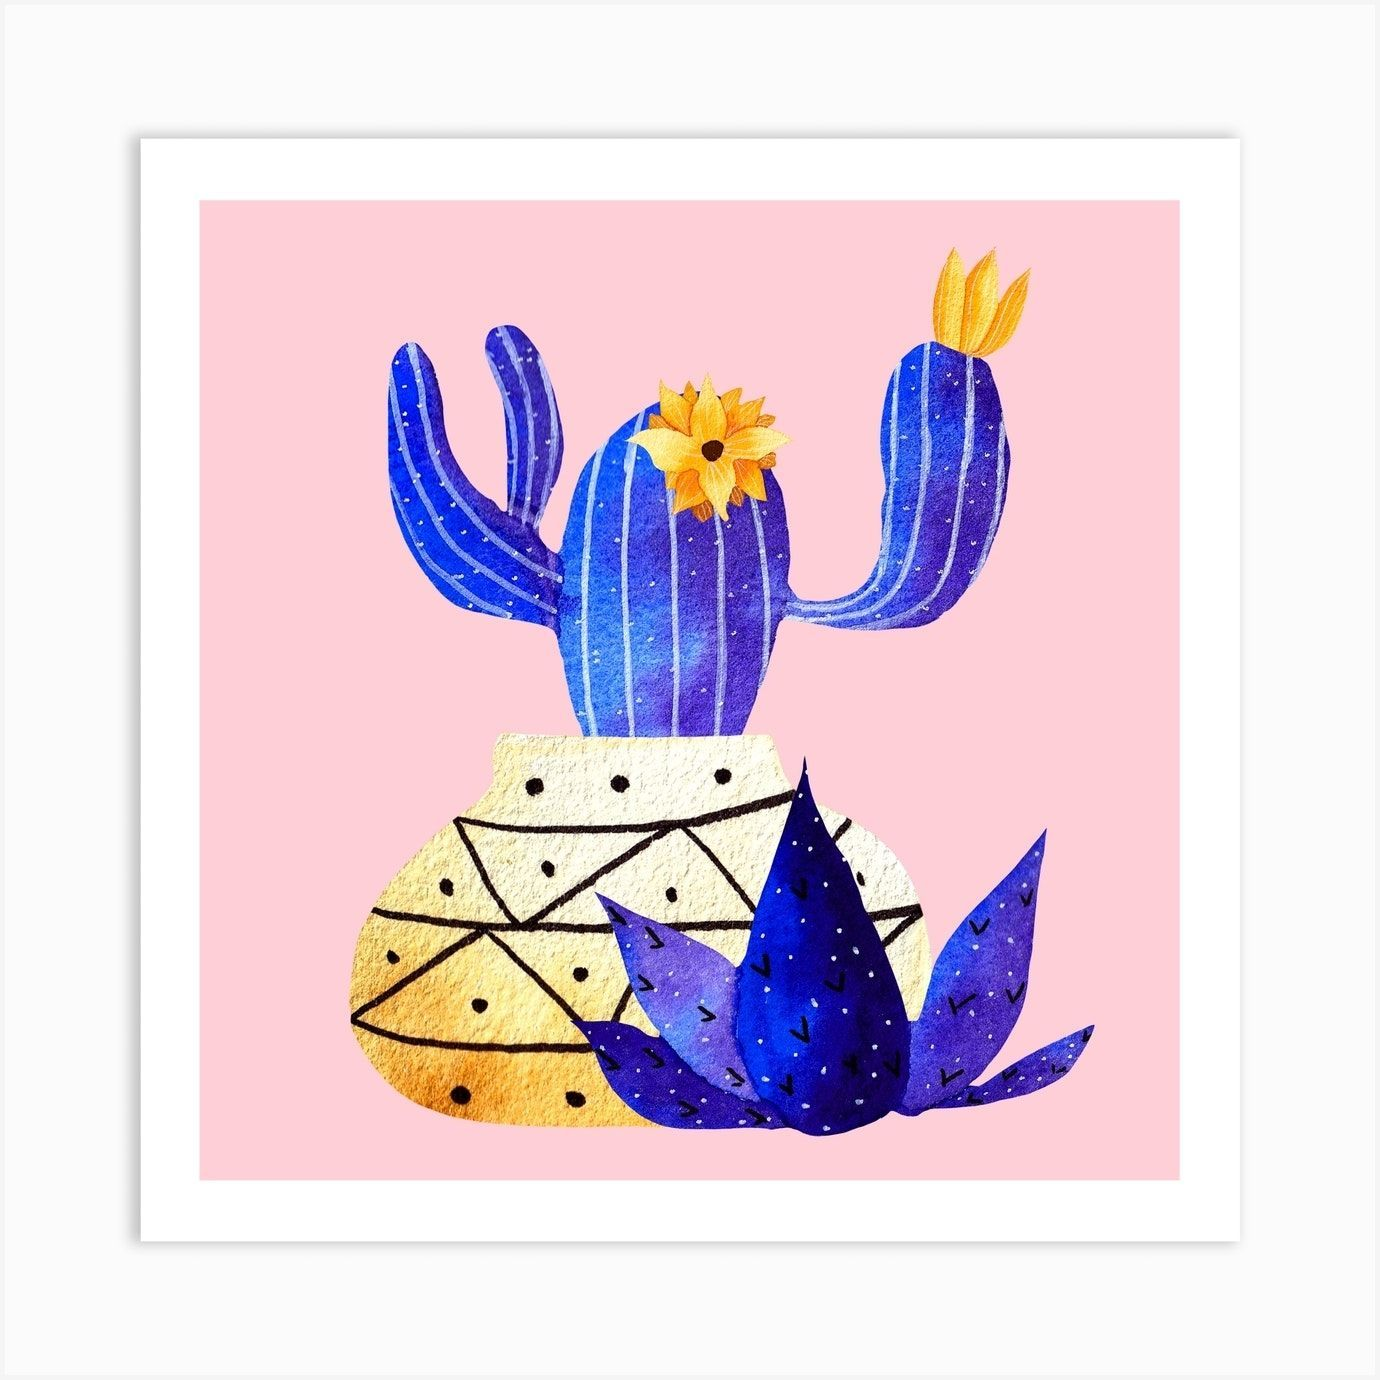 Golden Pot And Cute Cactus Square Art Print#art #cactus #cute #golden #pot #print #square